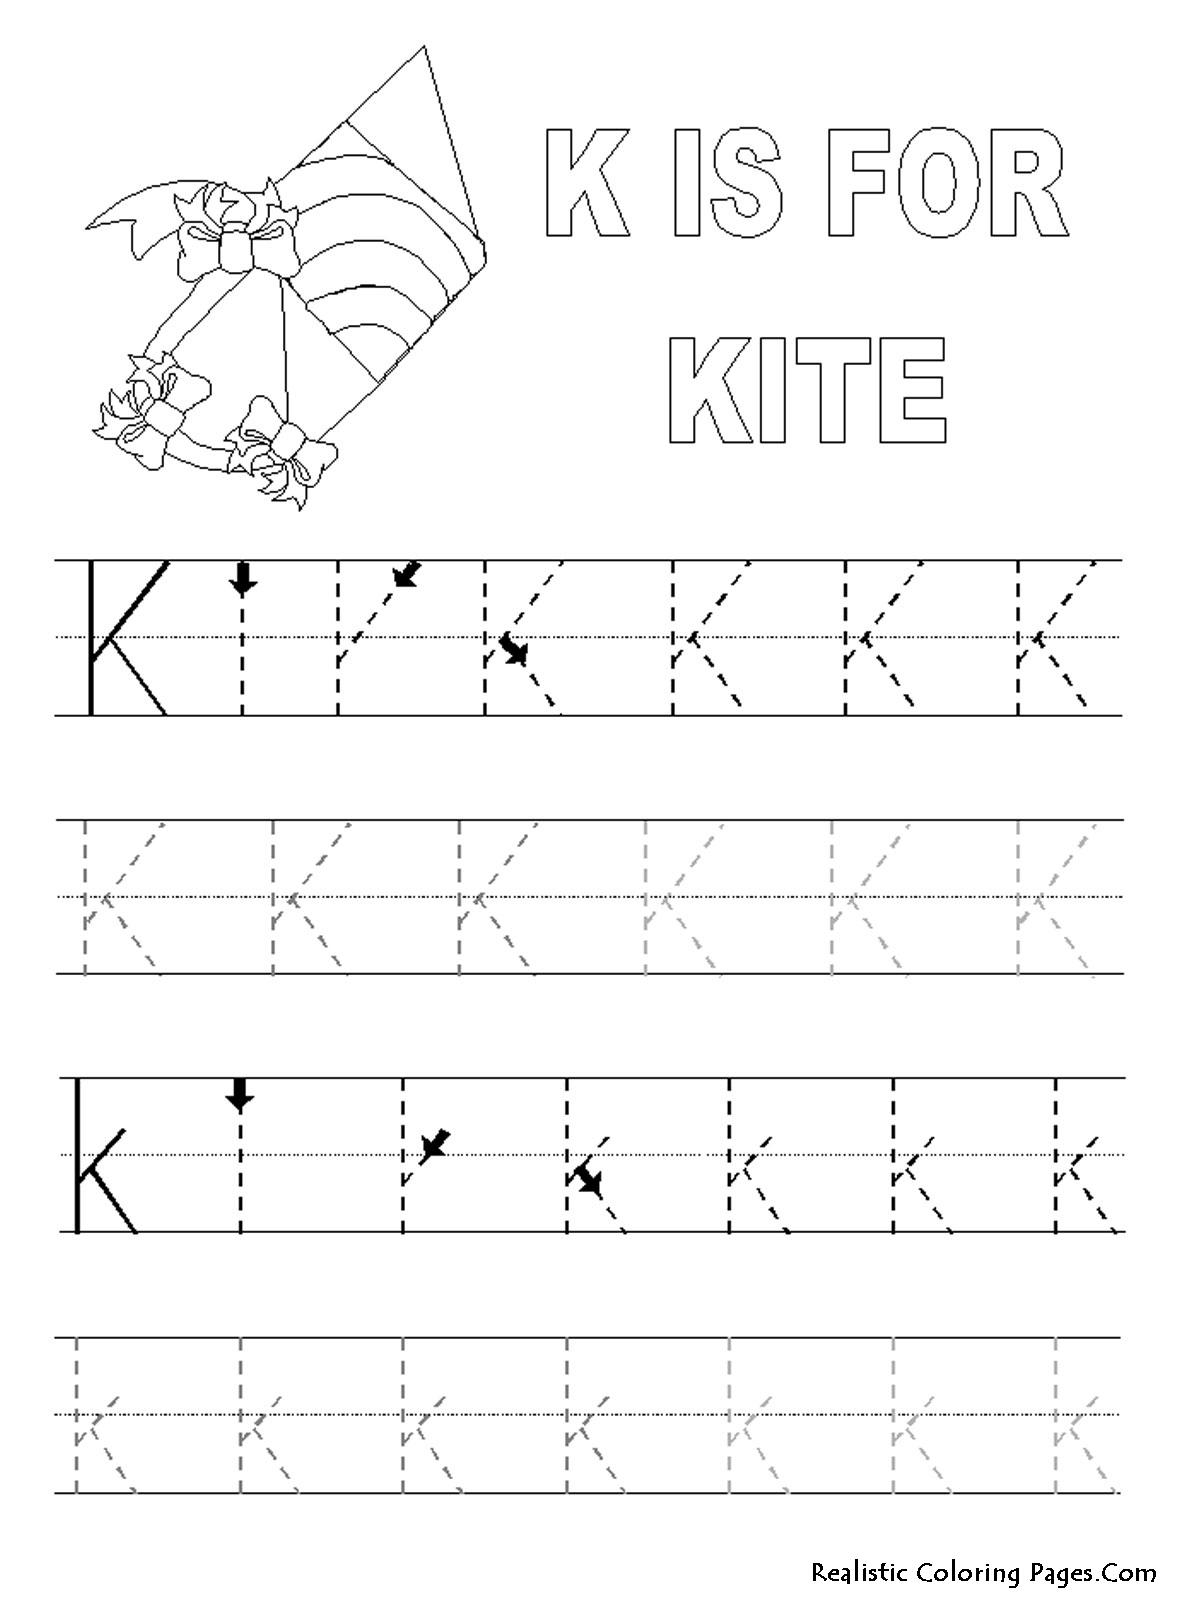 Worksheet ~ Tracingeets Number Preschool Letter Generator intended for Name Tracing A-Z